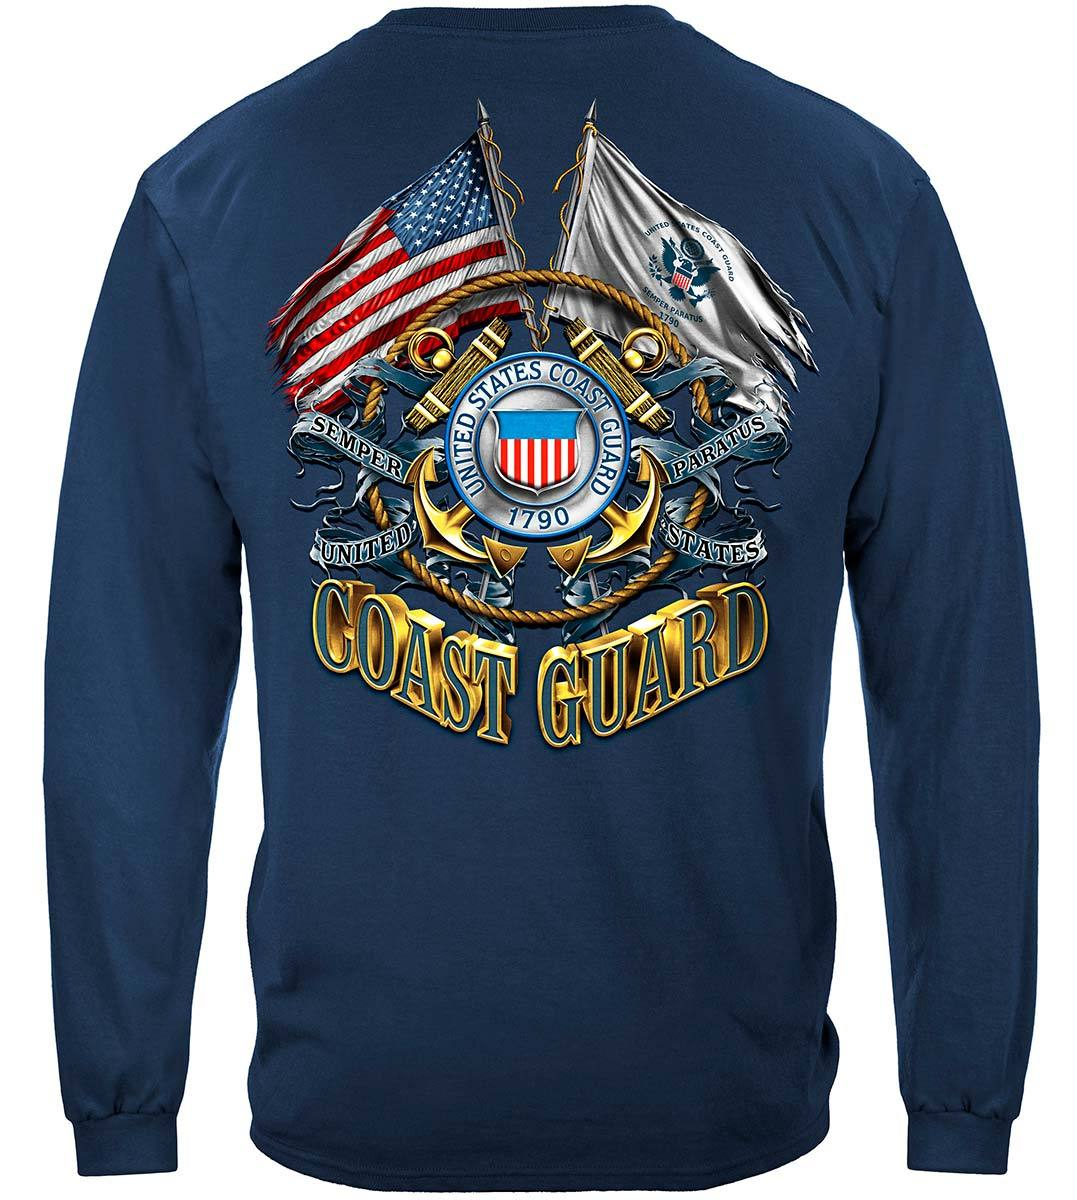 Double Flag Coast Guard Premium Hooded Sweat Shirt